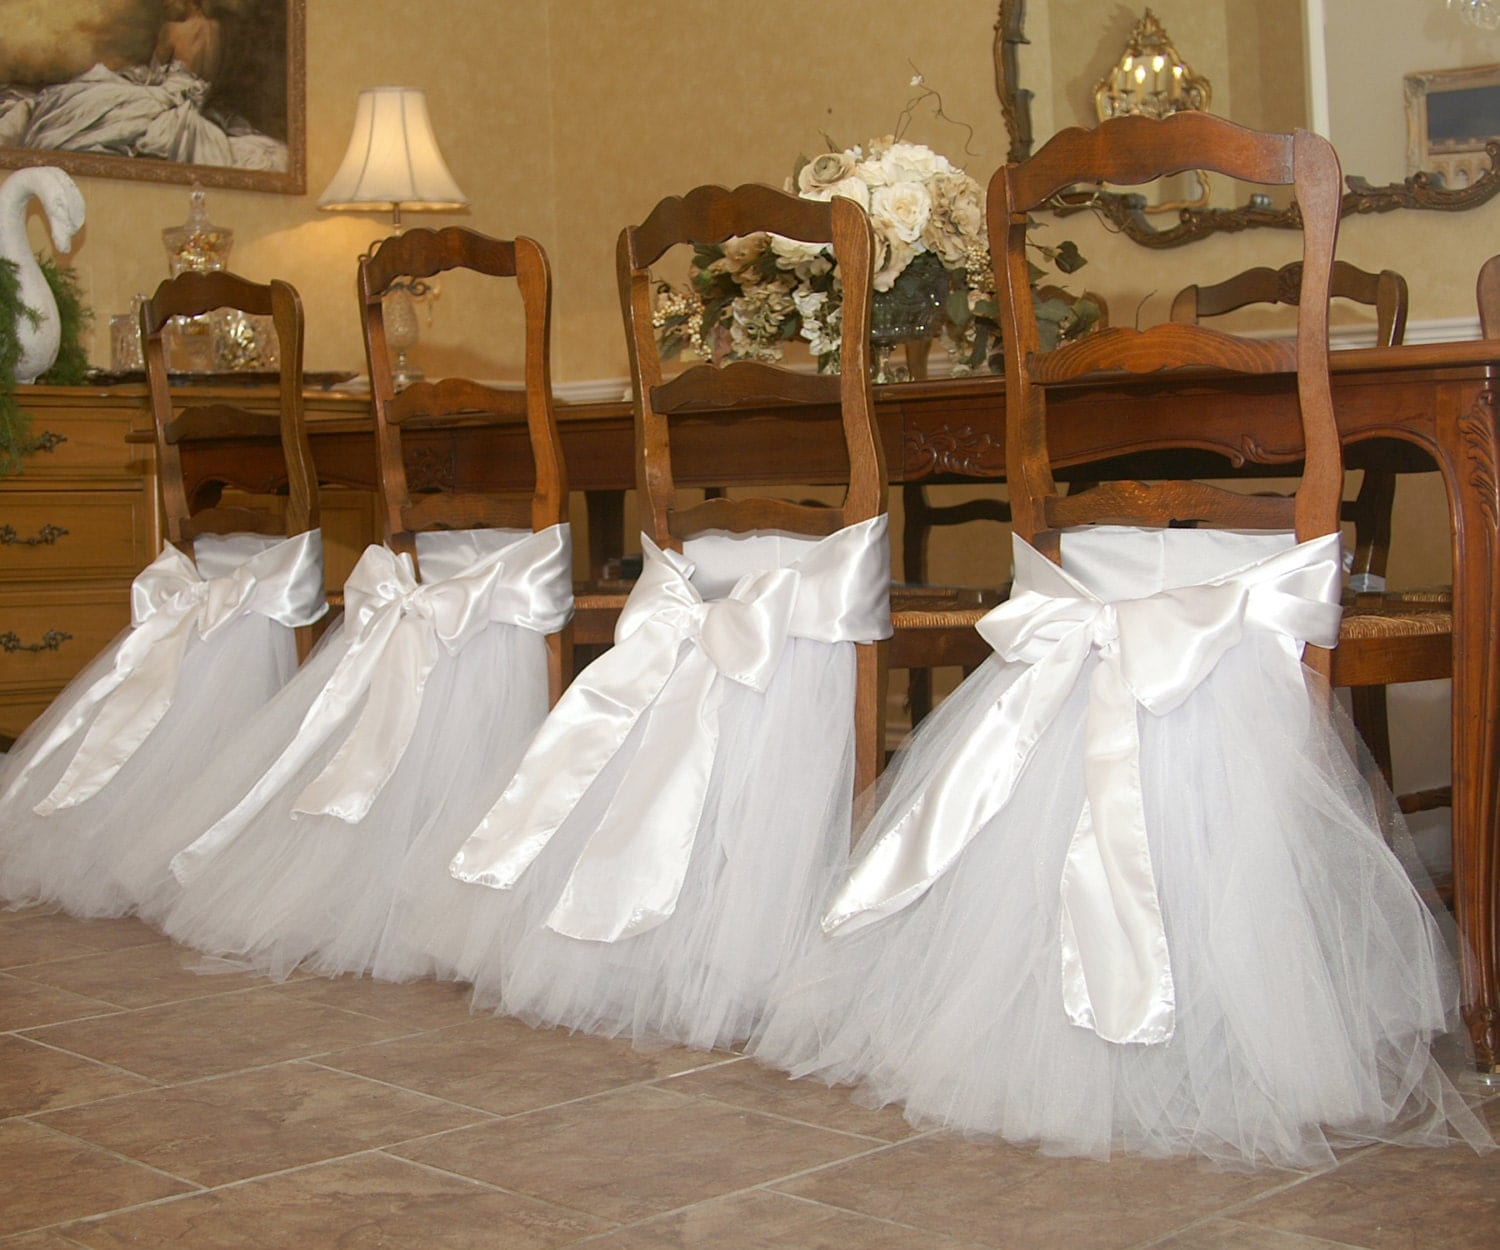 where to rent a baby shower chair portable with tray tutu for bridal birthday party